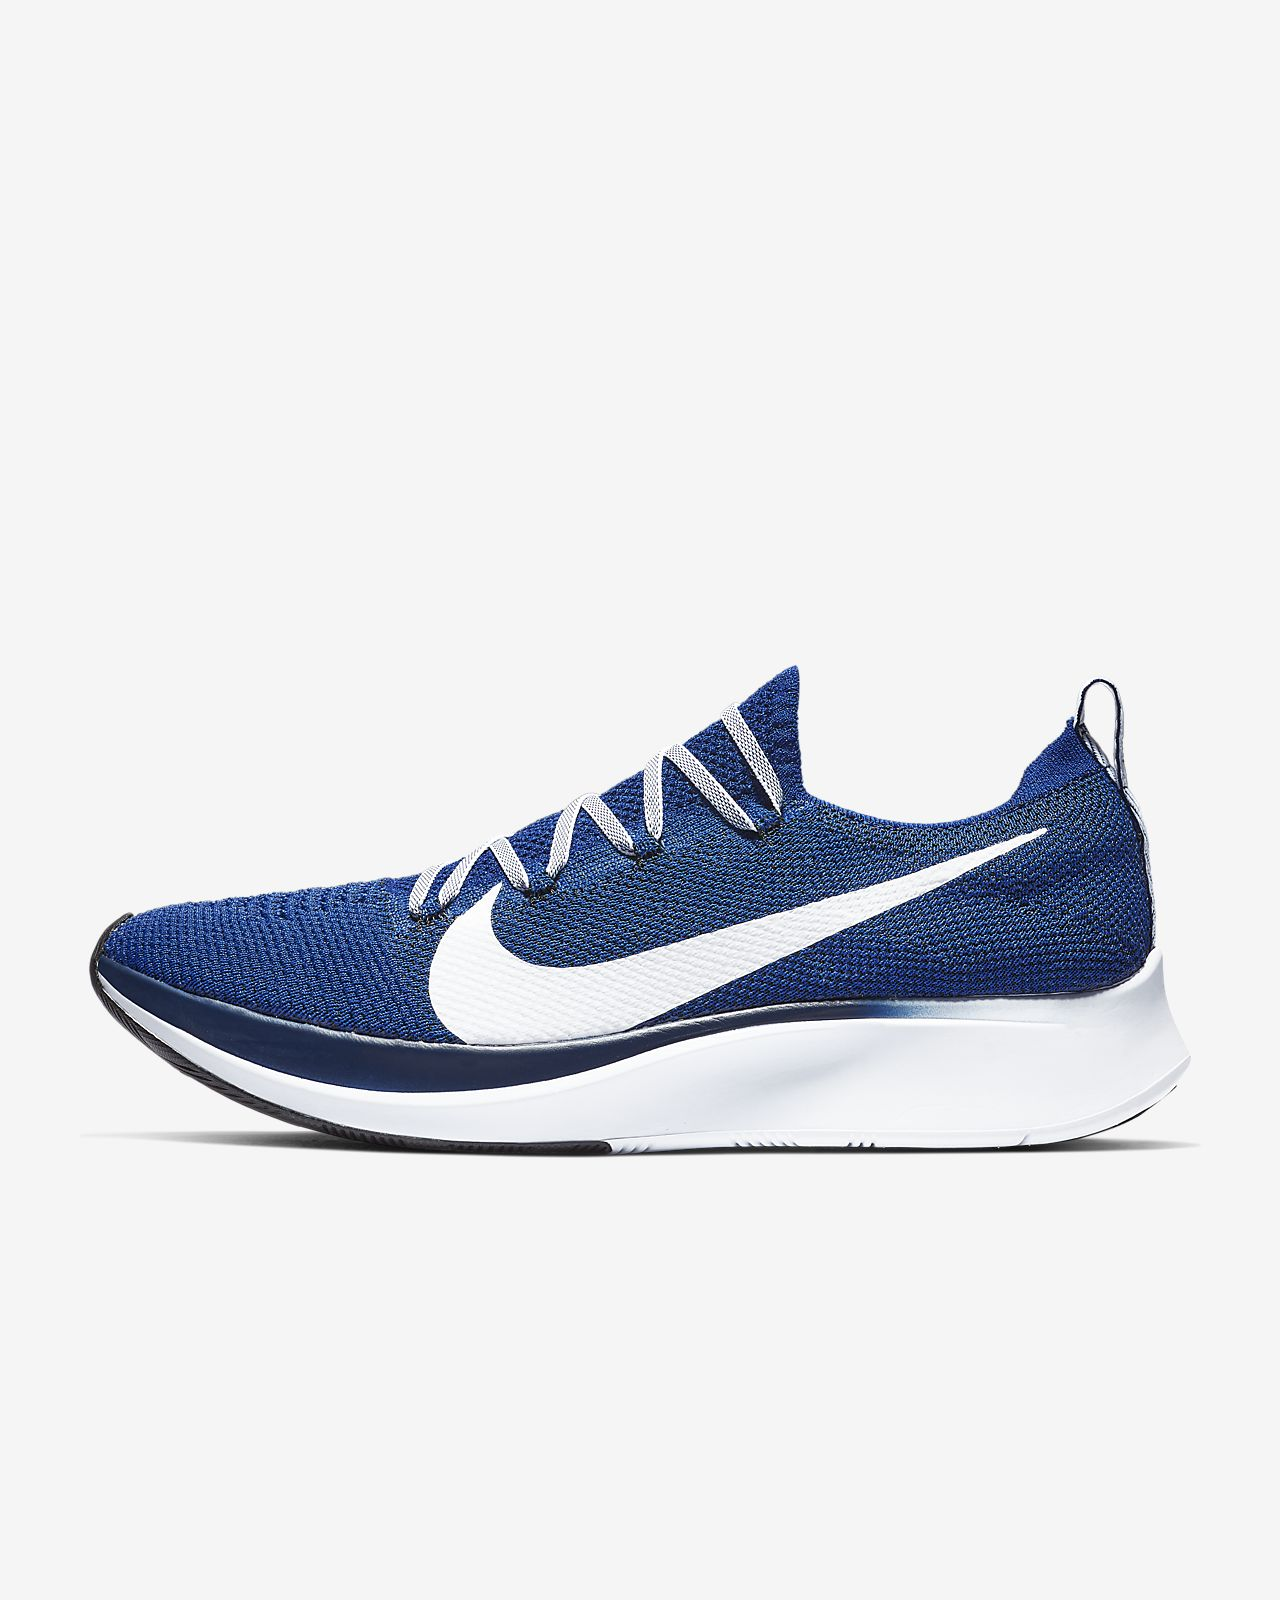 b0f736b0c7 Nike Zoom Fly Flyknit Men s Running Shoe. Nike.com IN